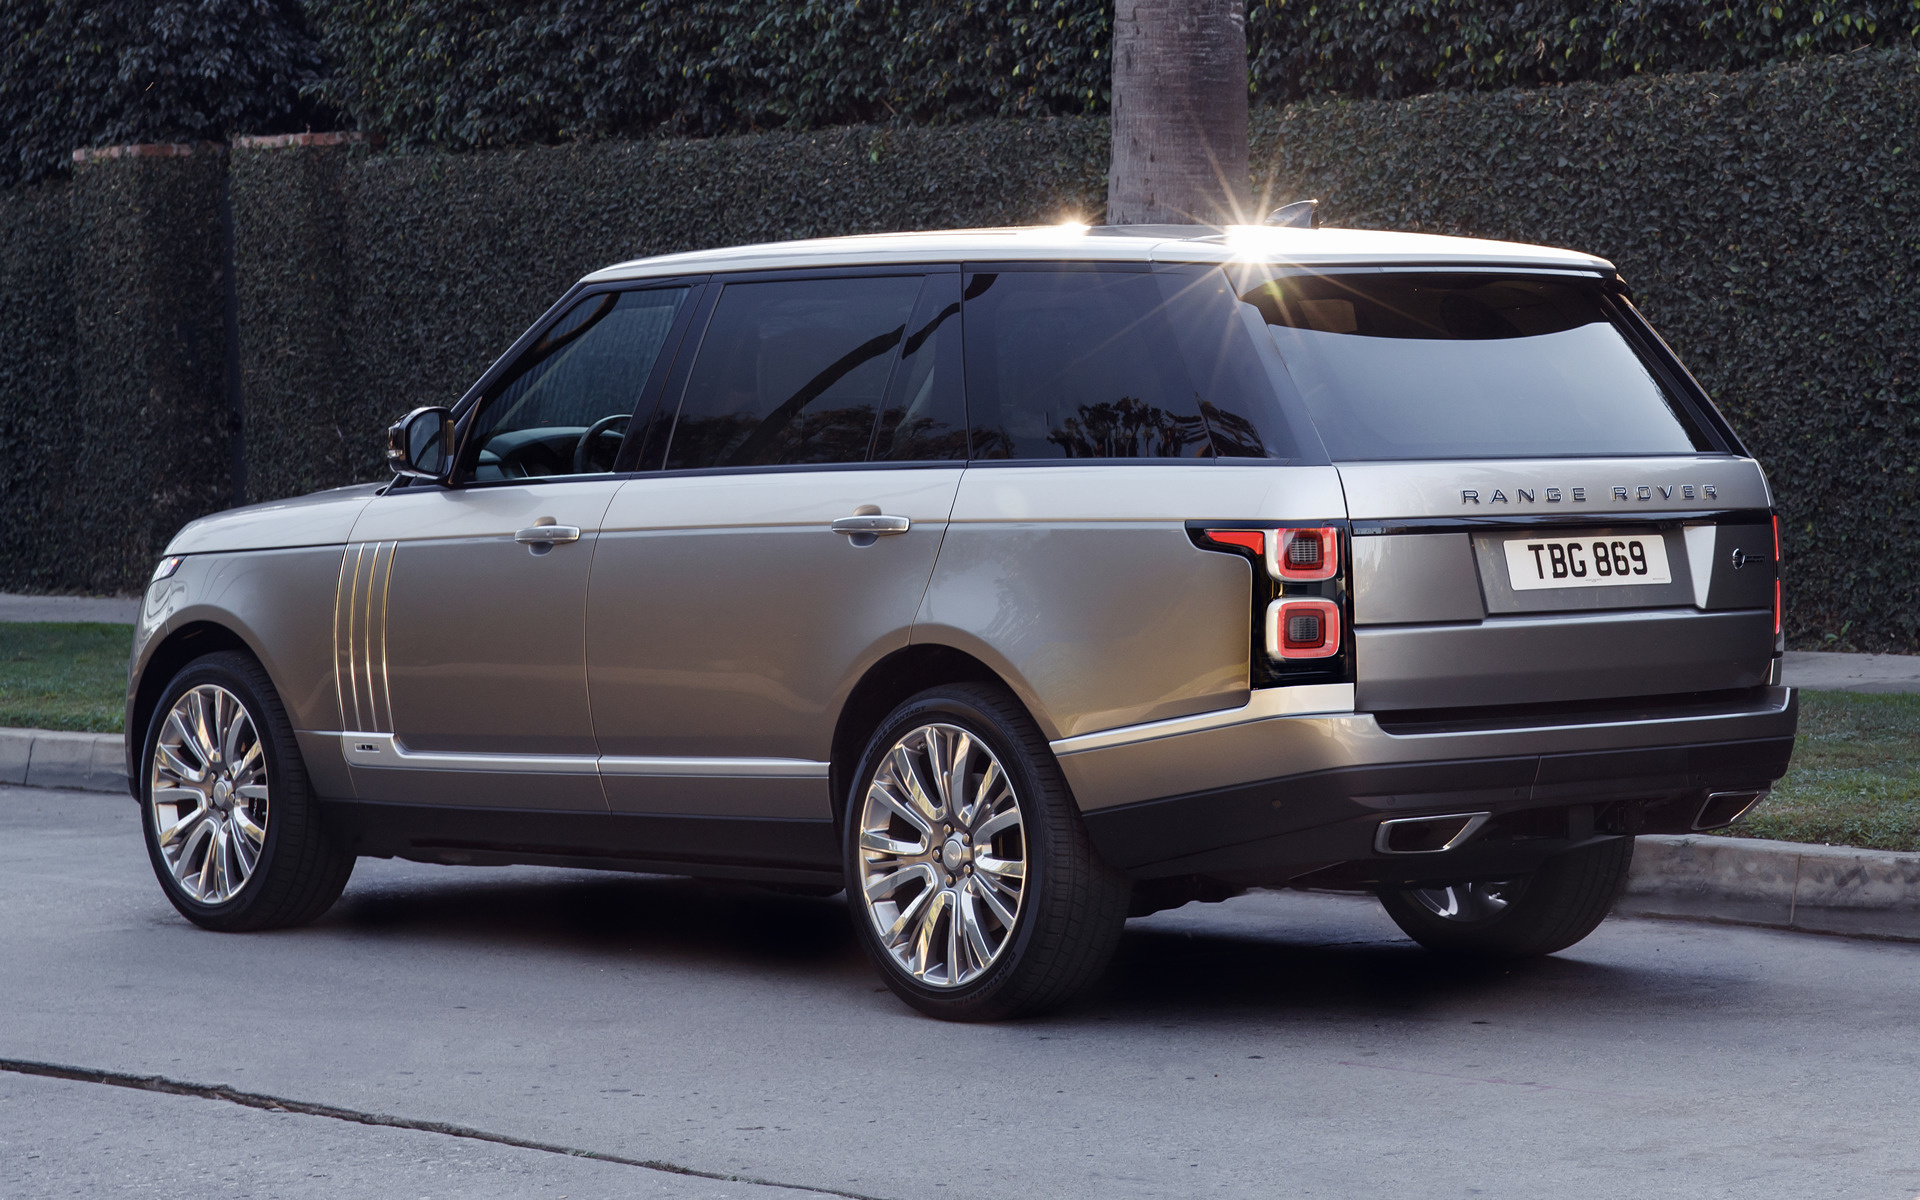 2018 Range Rover SVAutobiography [LWB] (US) - Wallpapers ...